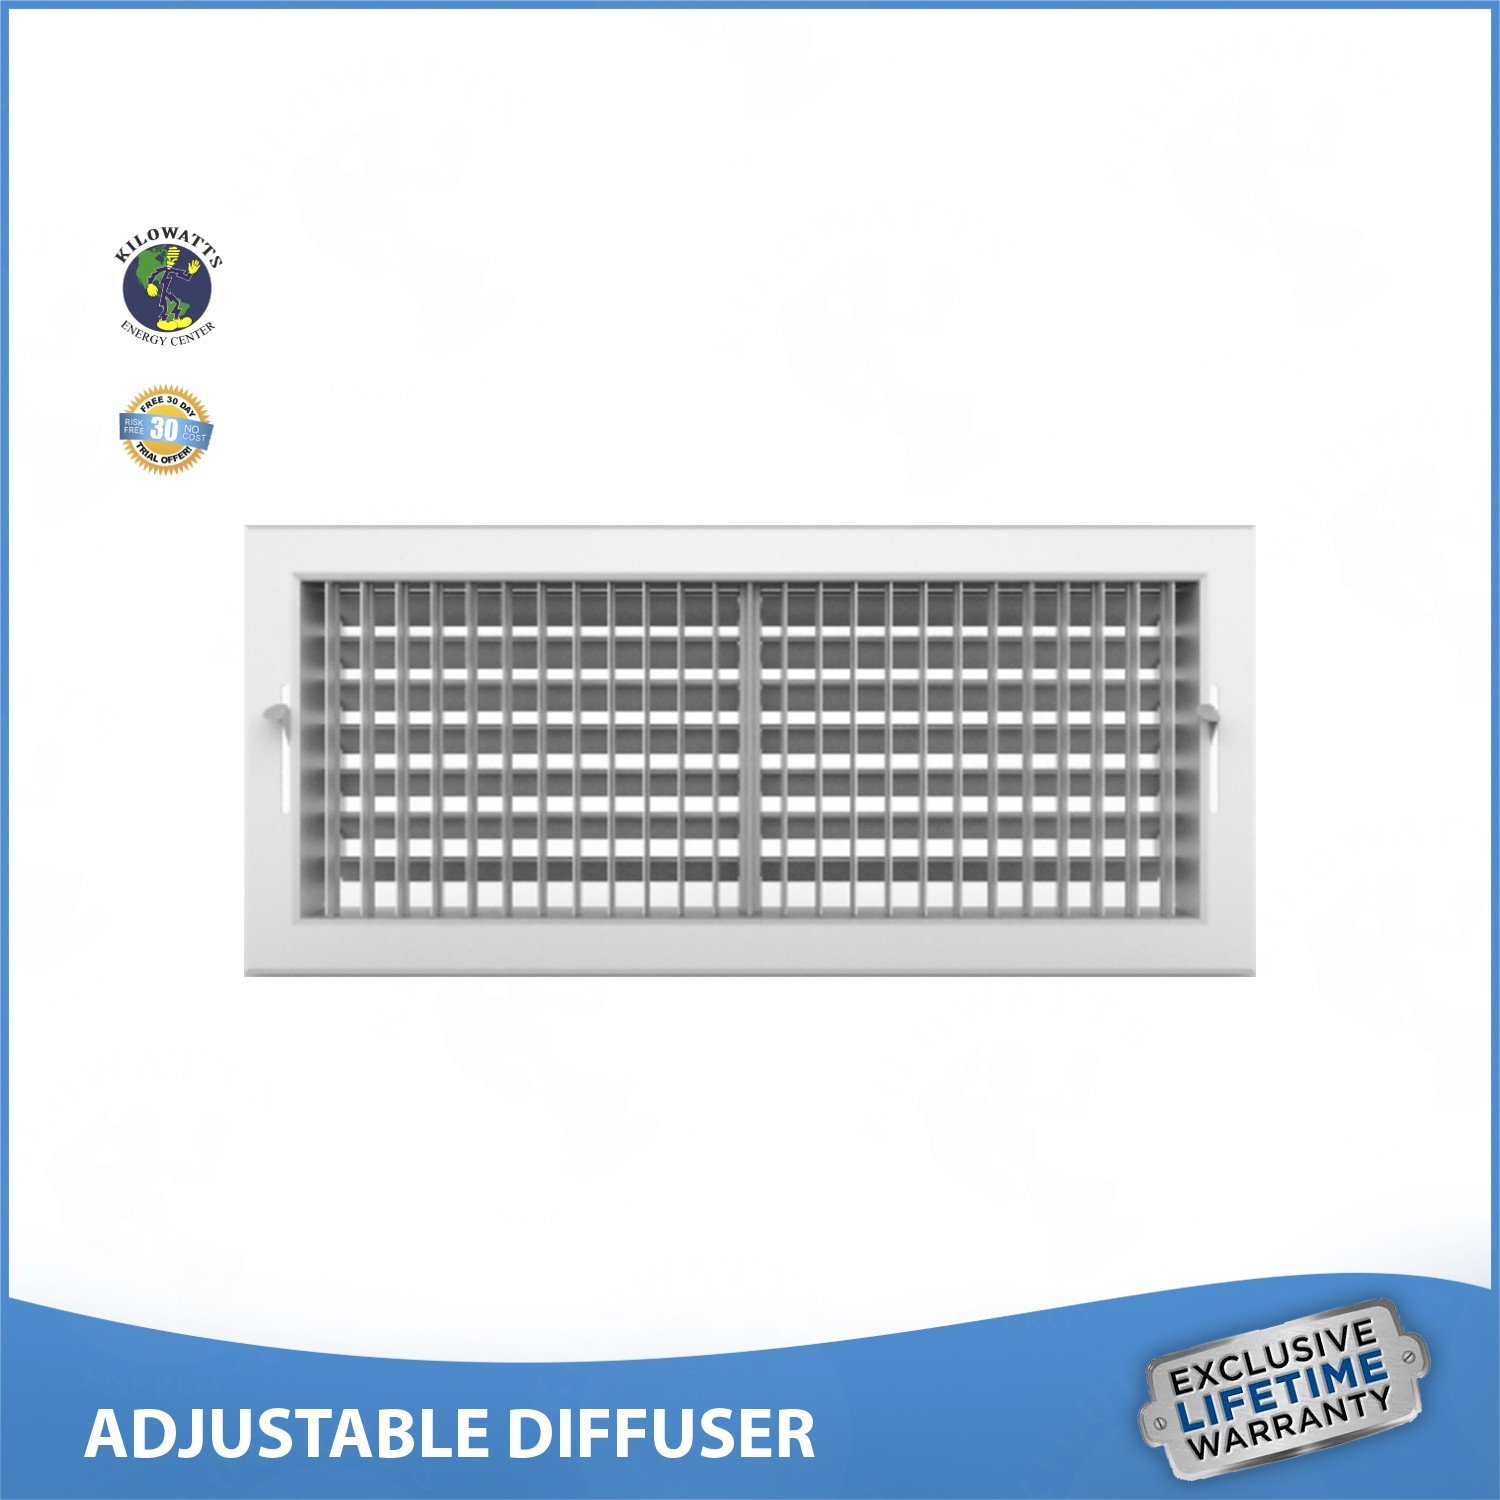 12''w x 10''h ADJUSTABLE DIFFUSER - Vent Duct Cover - Grille Register - Sidewall or Ceiling - High Airflow